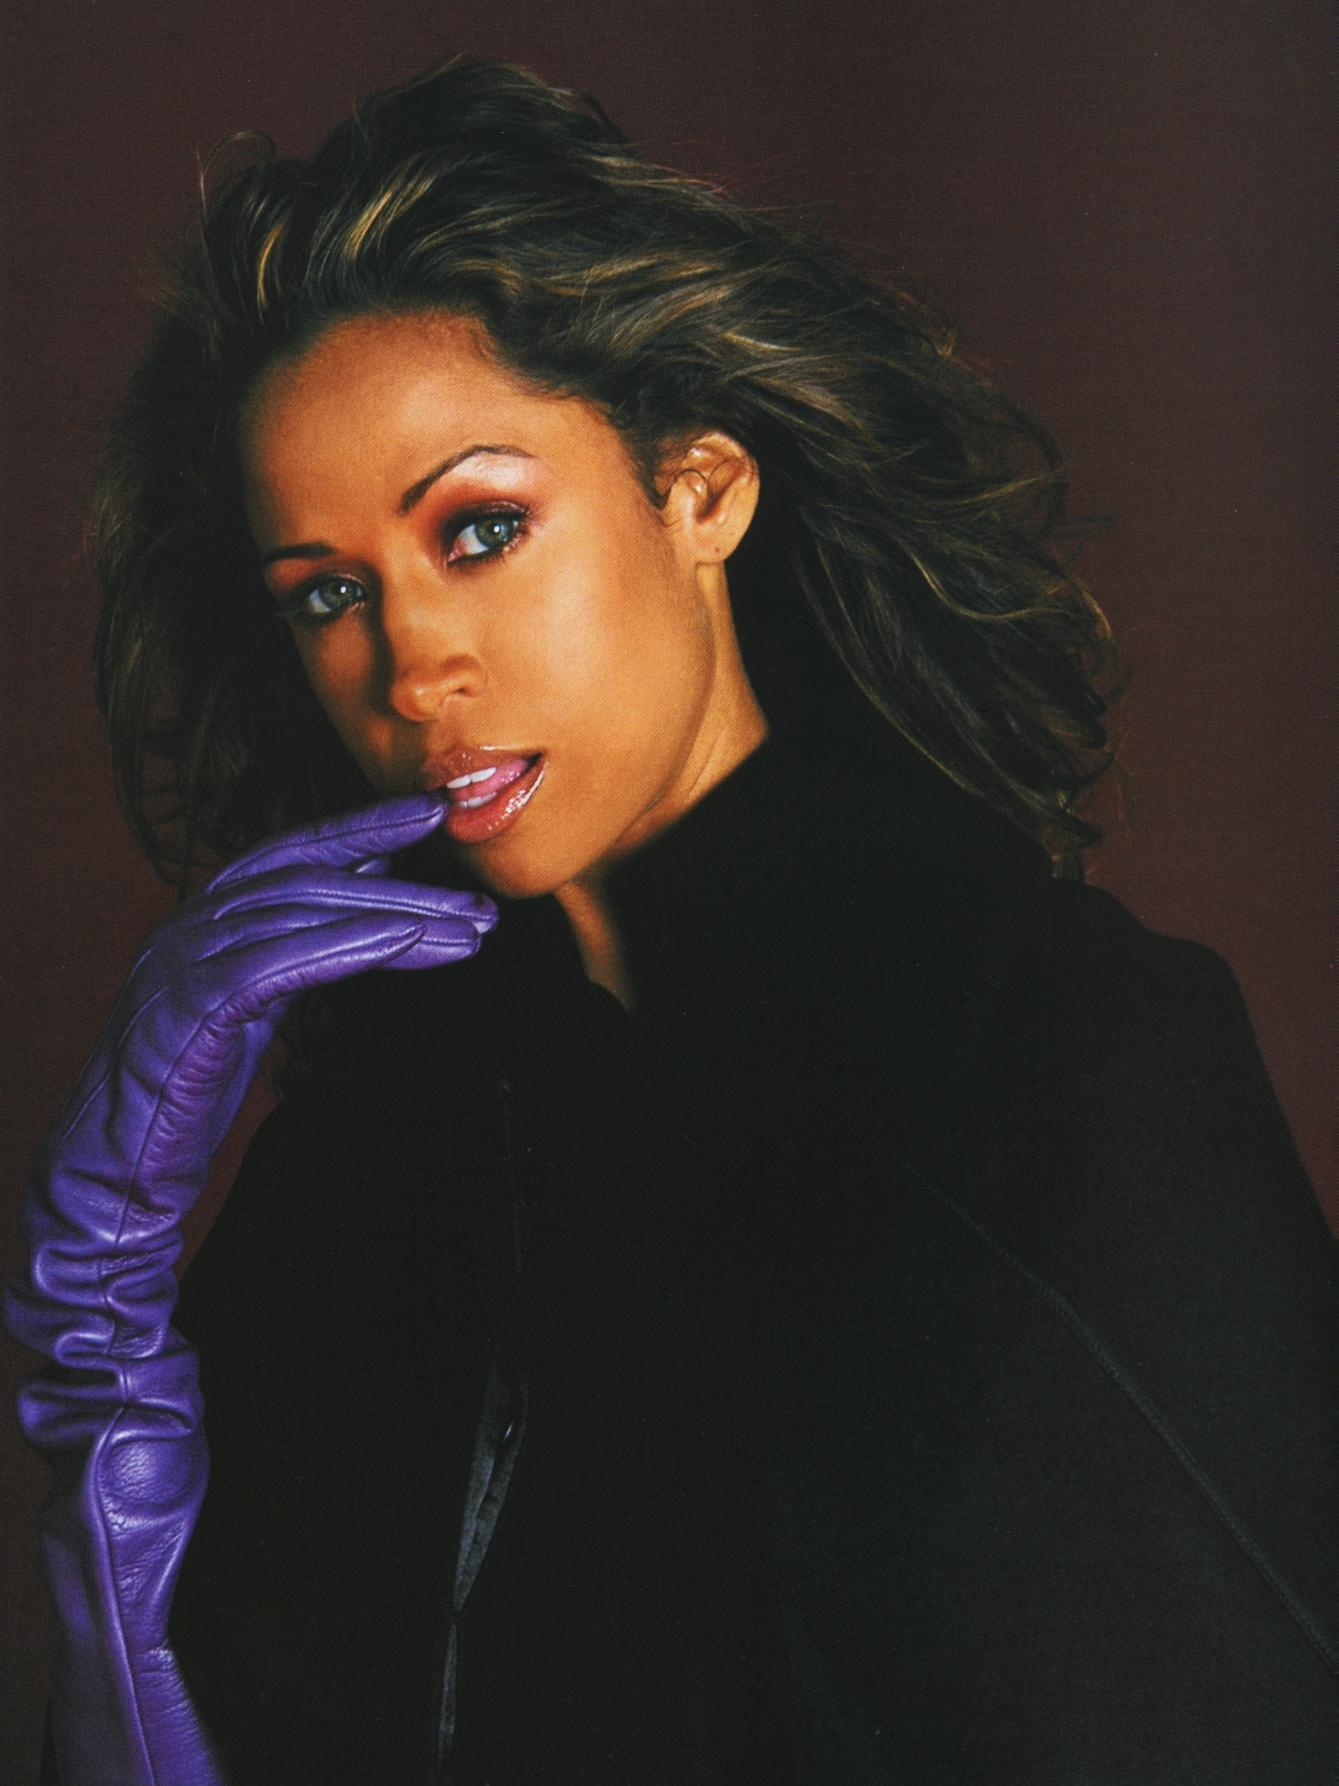 80082_StaceyDash03_122_525lo.jpg